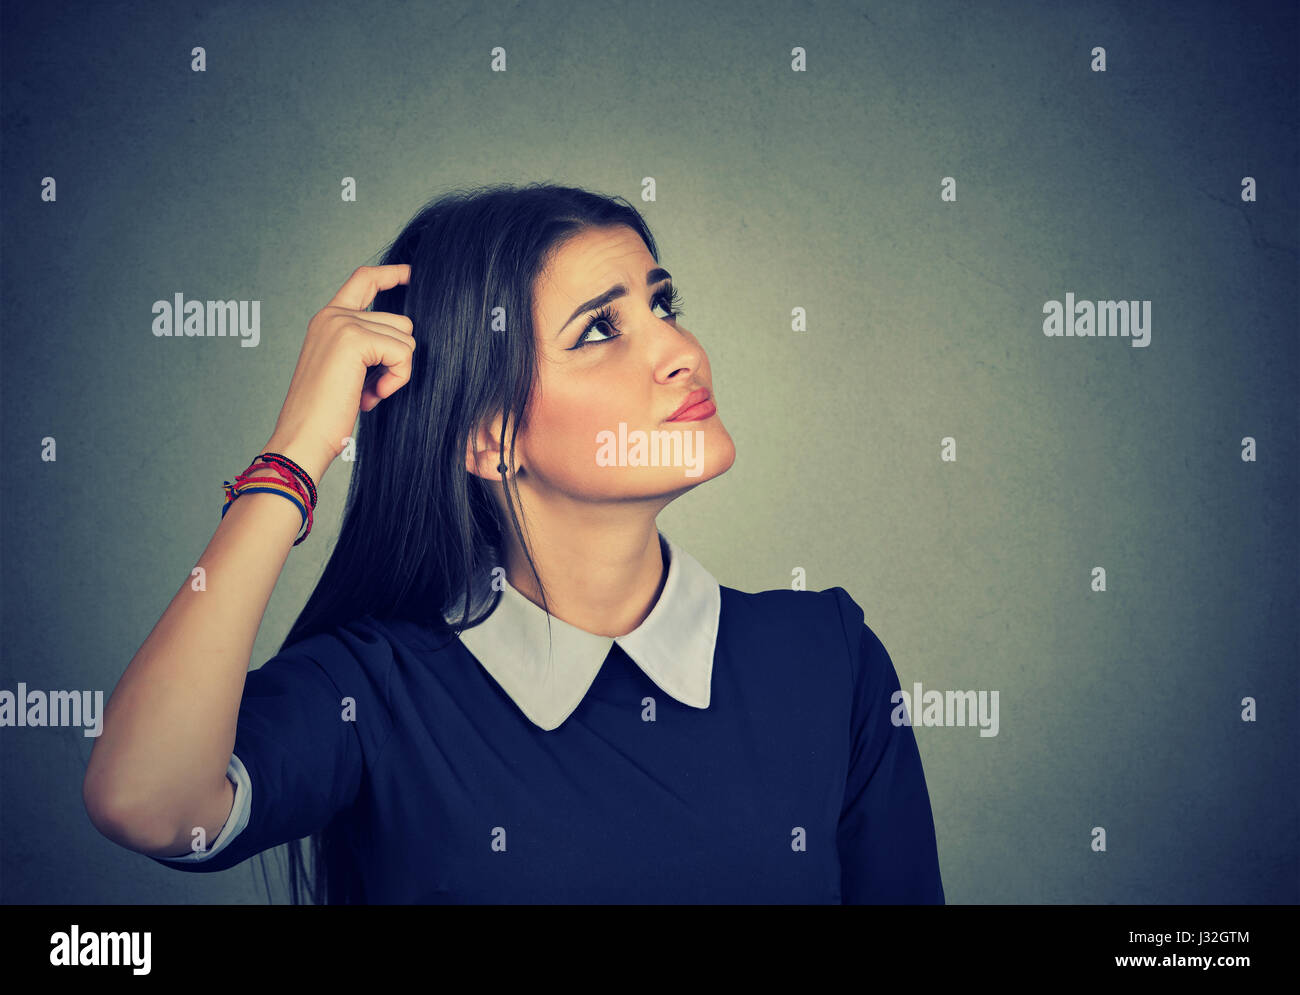 Portrait confused thinking young woman bewildered scratching her head seeks a solution looking up isolated on gray - Stock Image